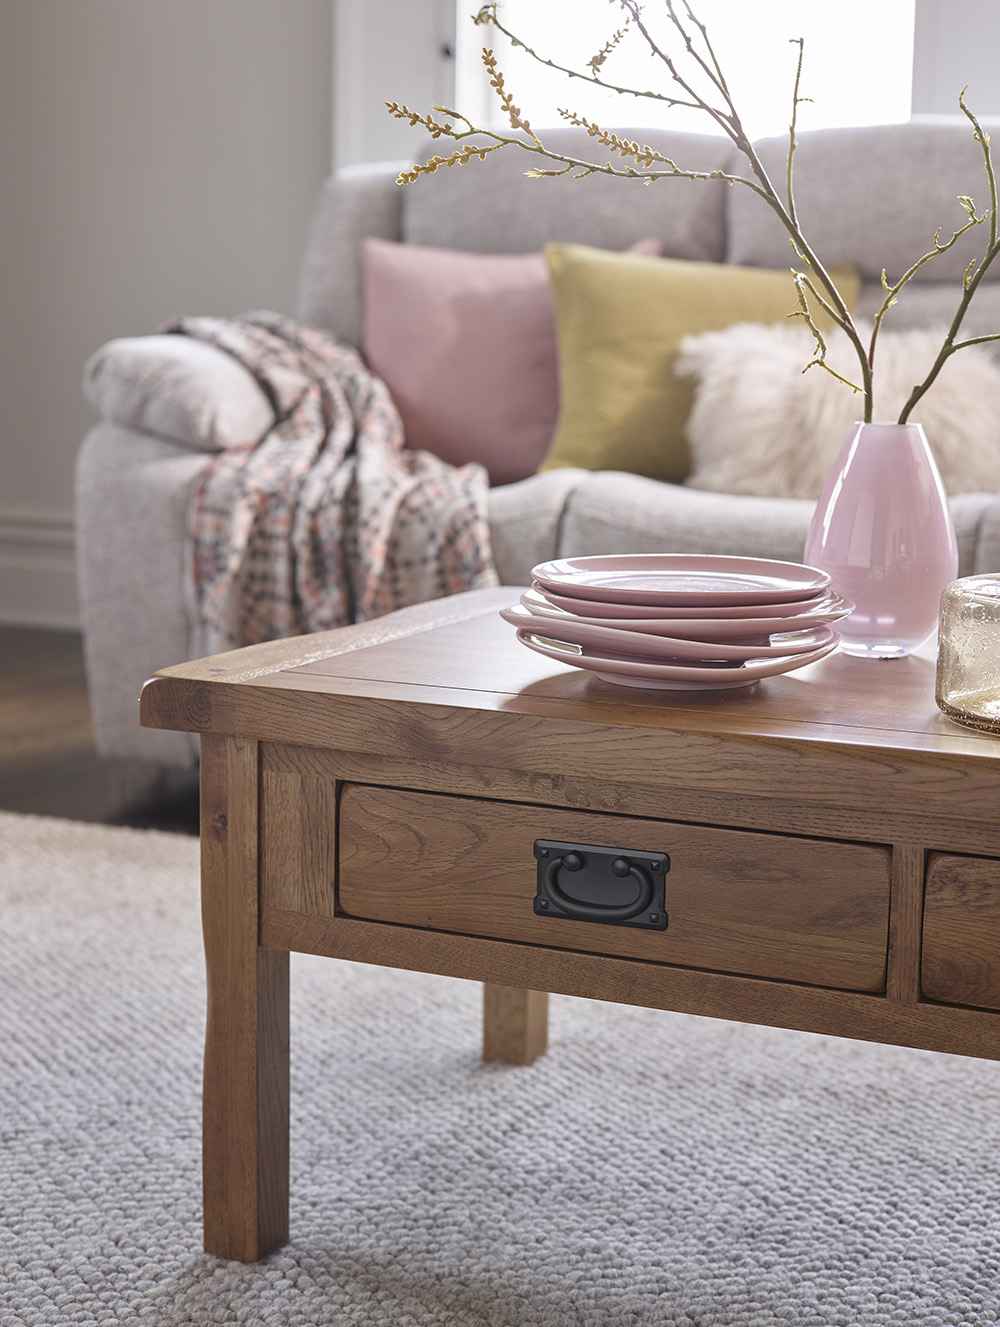 Rustic coffee table, pink accessories